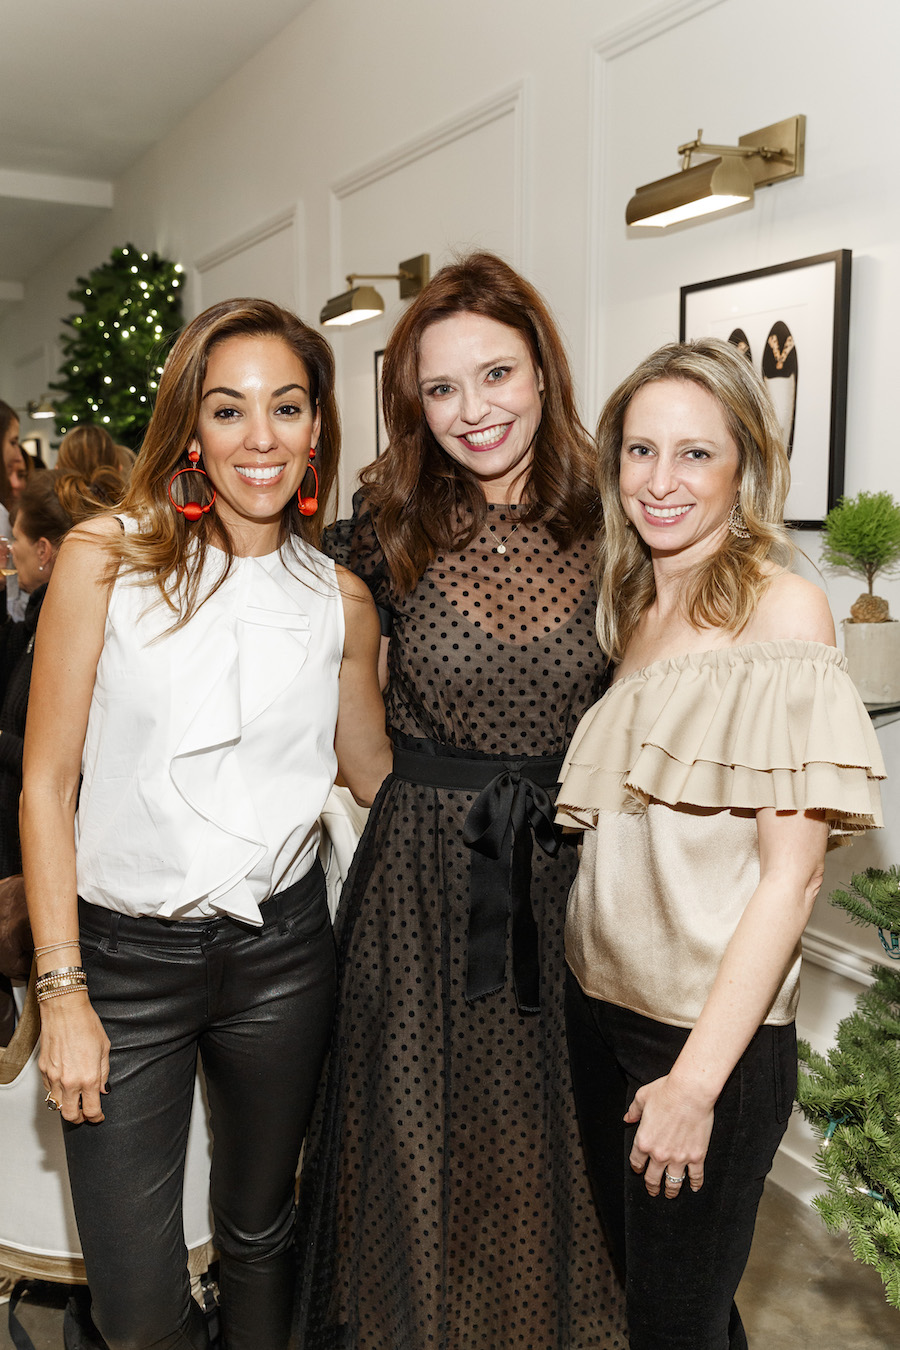 Bianca Gates, Kristen Green and Marisa Sharkey at the event